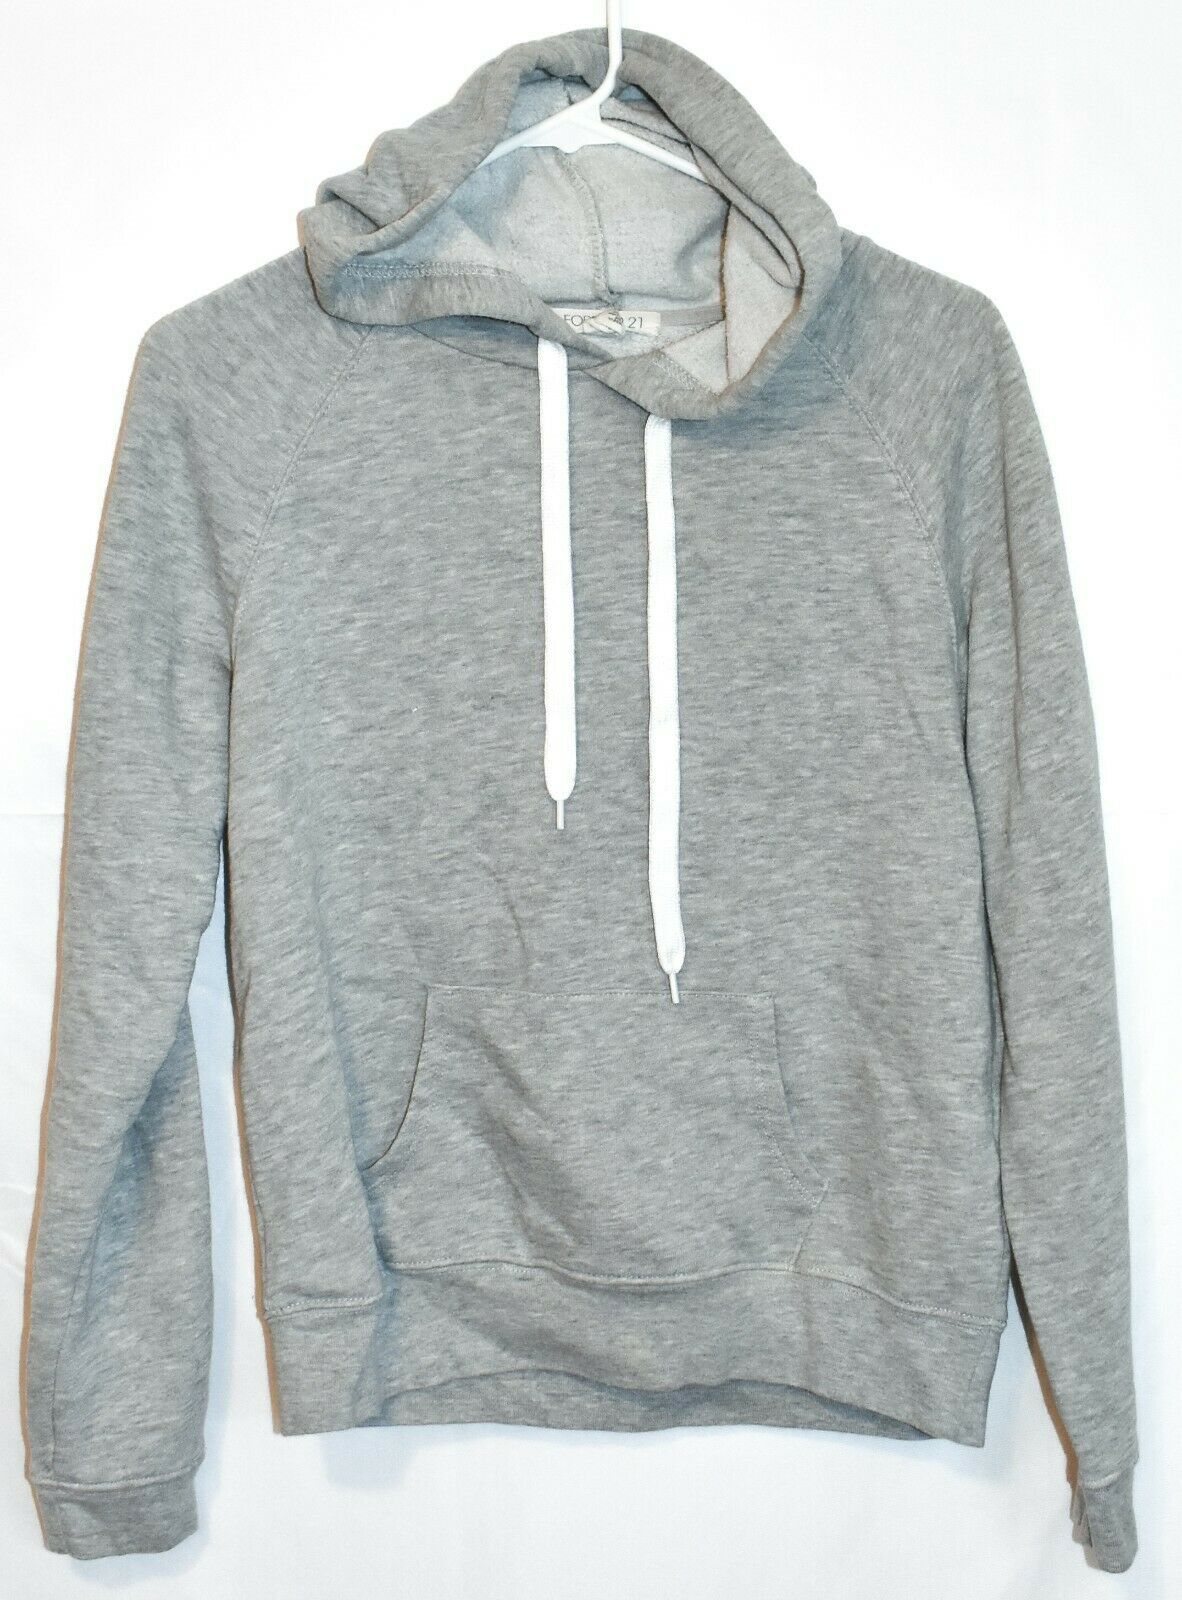 Forever 21 Women's Plain Gray Front Pocket Pullover Hooded Sweatshirt Hoodie S